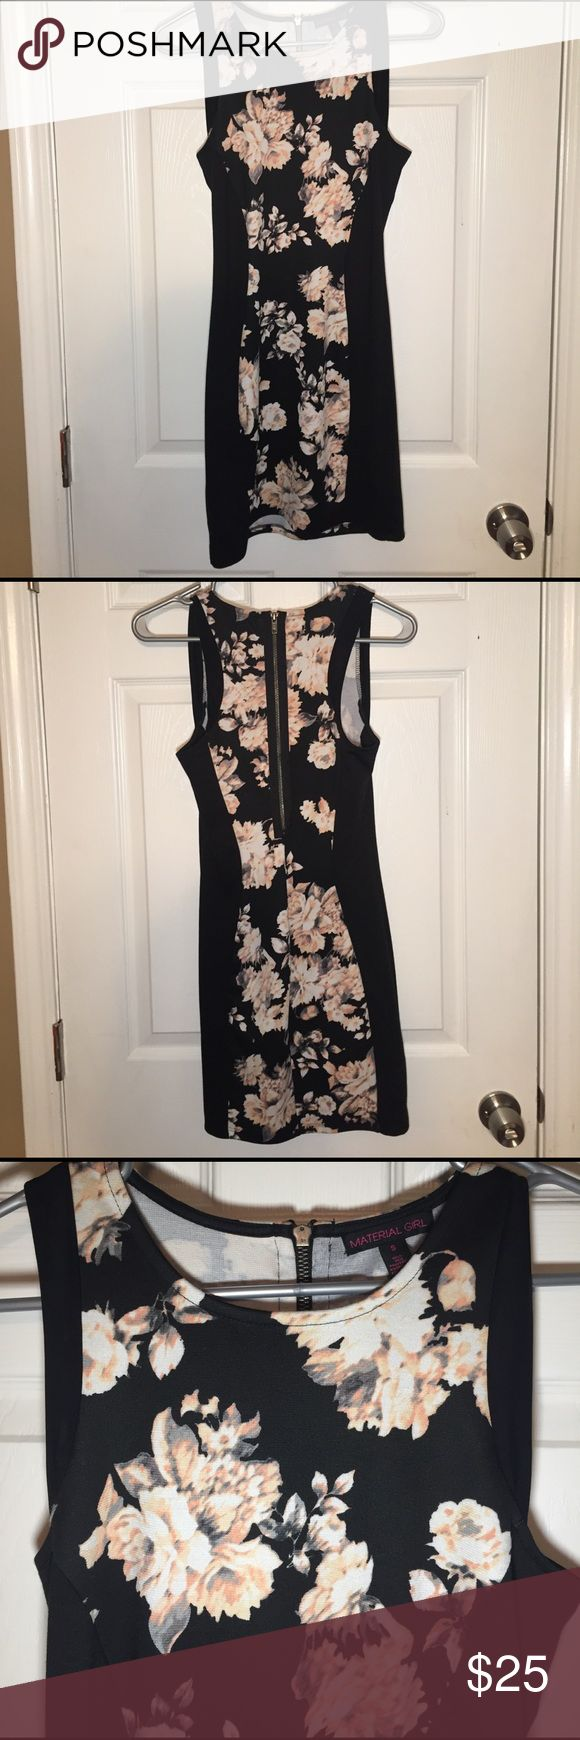 Floral Bodycon dress- Small Floral Bodycon Dress- Small- Never Worn! Material Girl Dresses